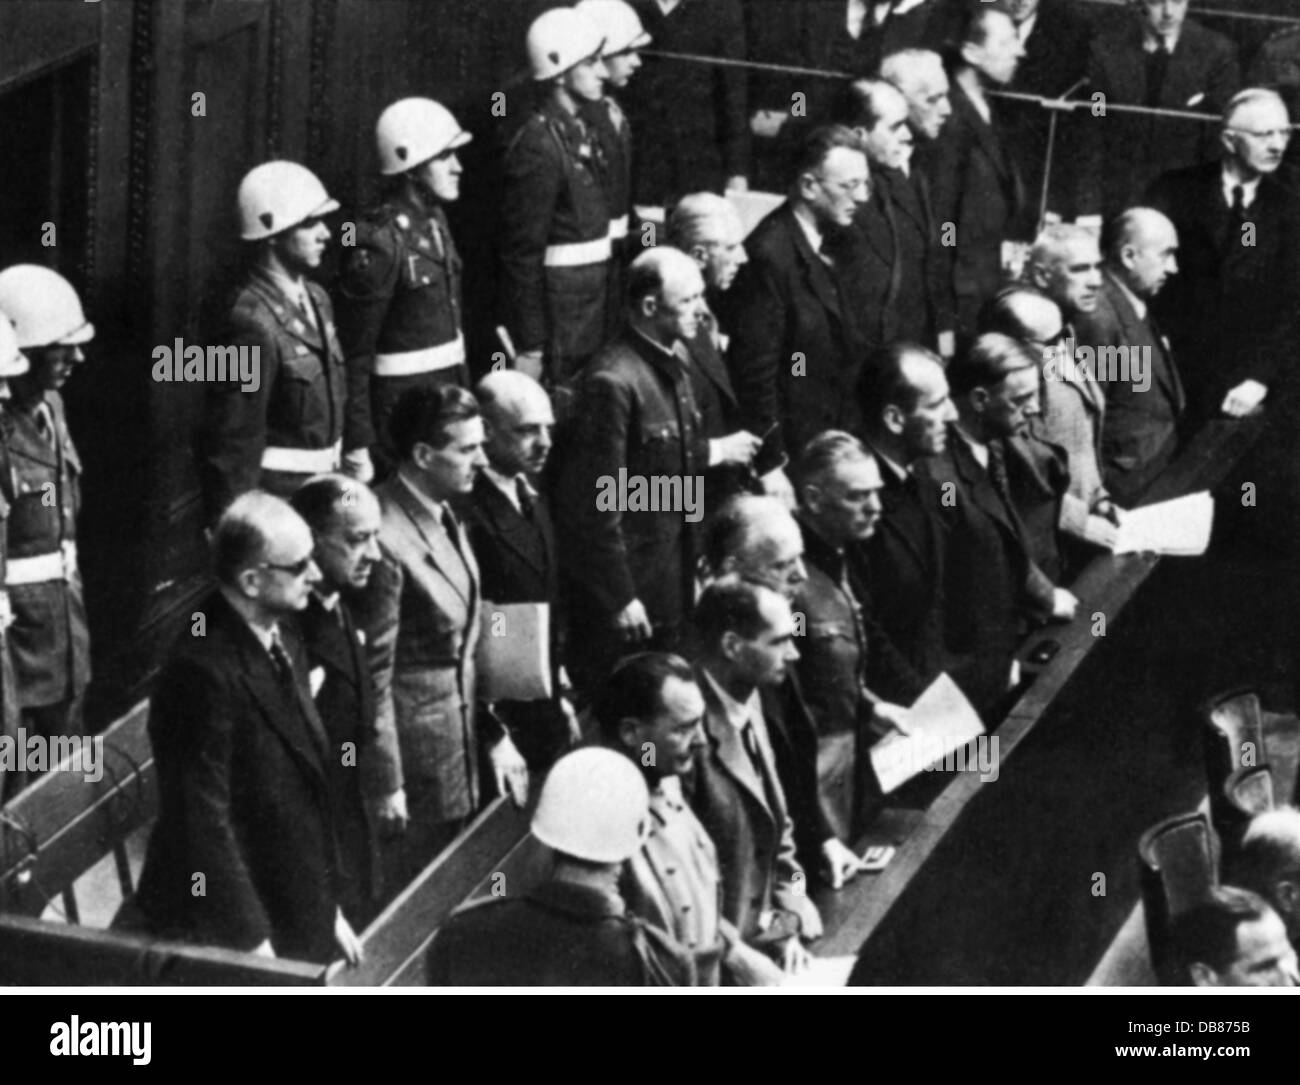 nuremberg trial justice The leipzig trials after the first world war3 the nuremberg trials challenged the es- tablished boundaries between morality and legality, justice and victory,.